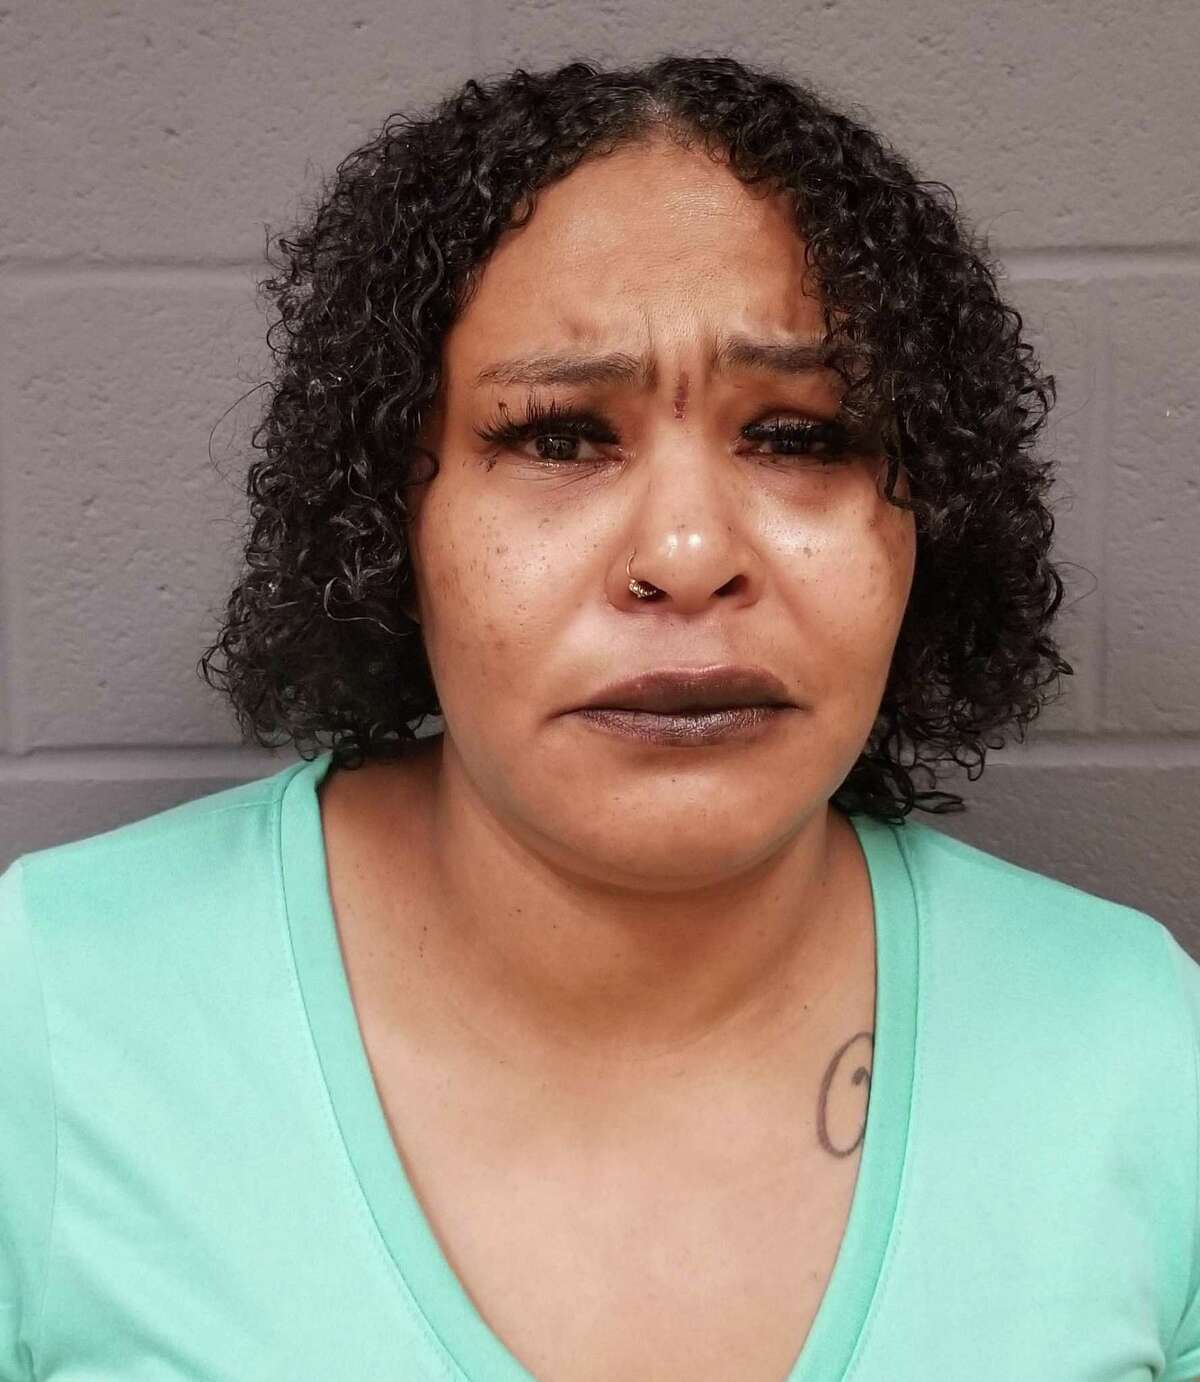 Ella Rosario, also known as Ella Connors, 47, of Rocky Hill, Conn., was arrested on May 7, 2021. She was charged with first-degree larceny by defrauding a public community, conspiracy to commit first-degree larceny by defrauding a public community and health insurance fraud.